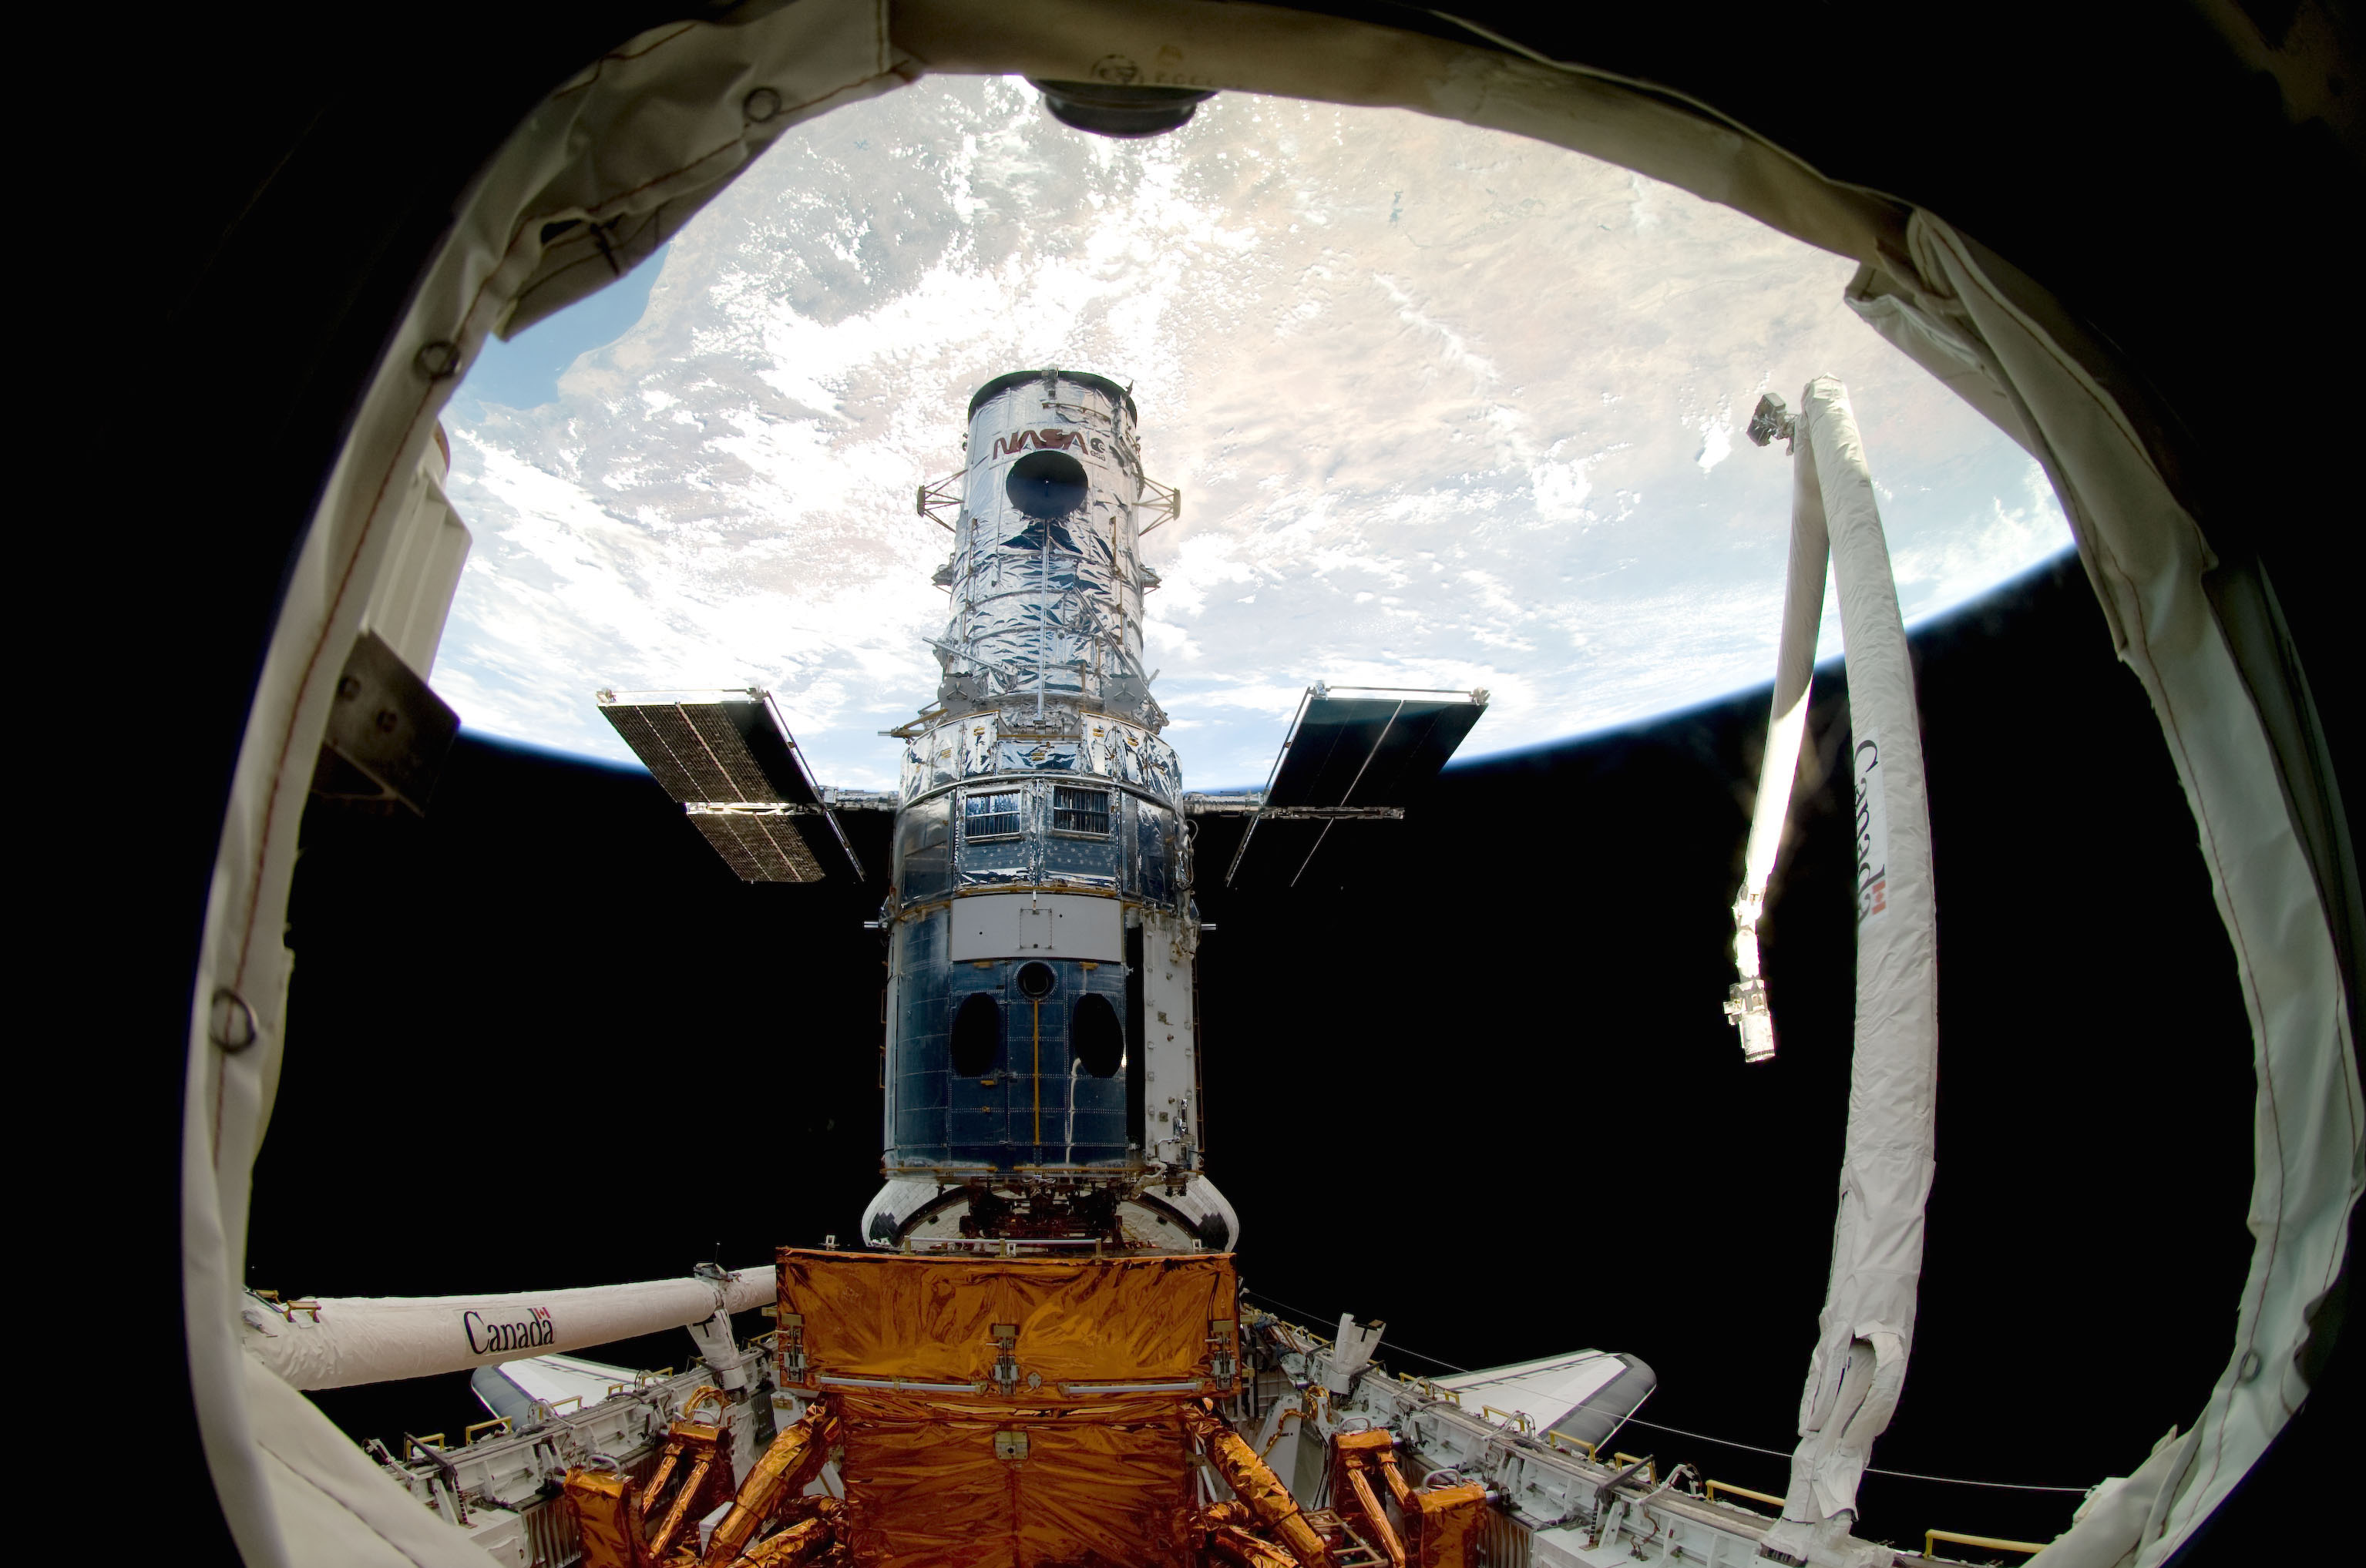 The Hubble Space Telescope in the payload bay of space shuttle Atlantis during the last servicing mission in May 2009. Credit: NASA